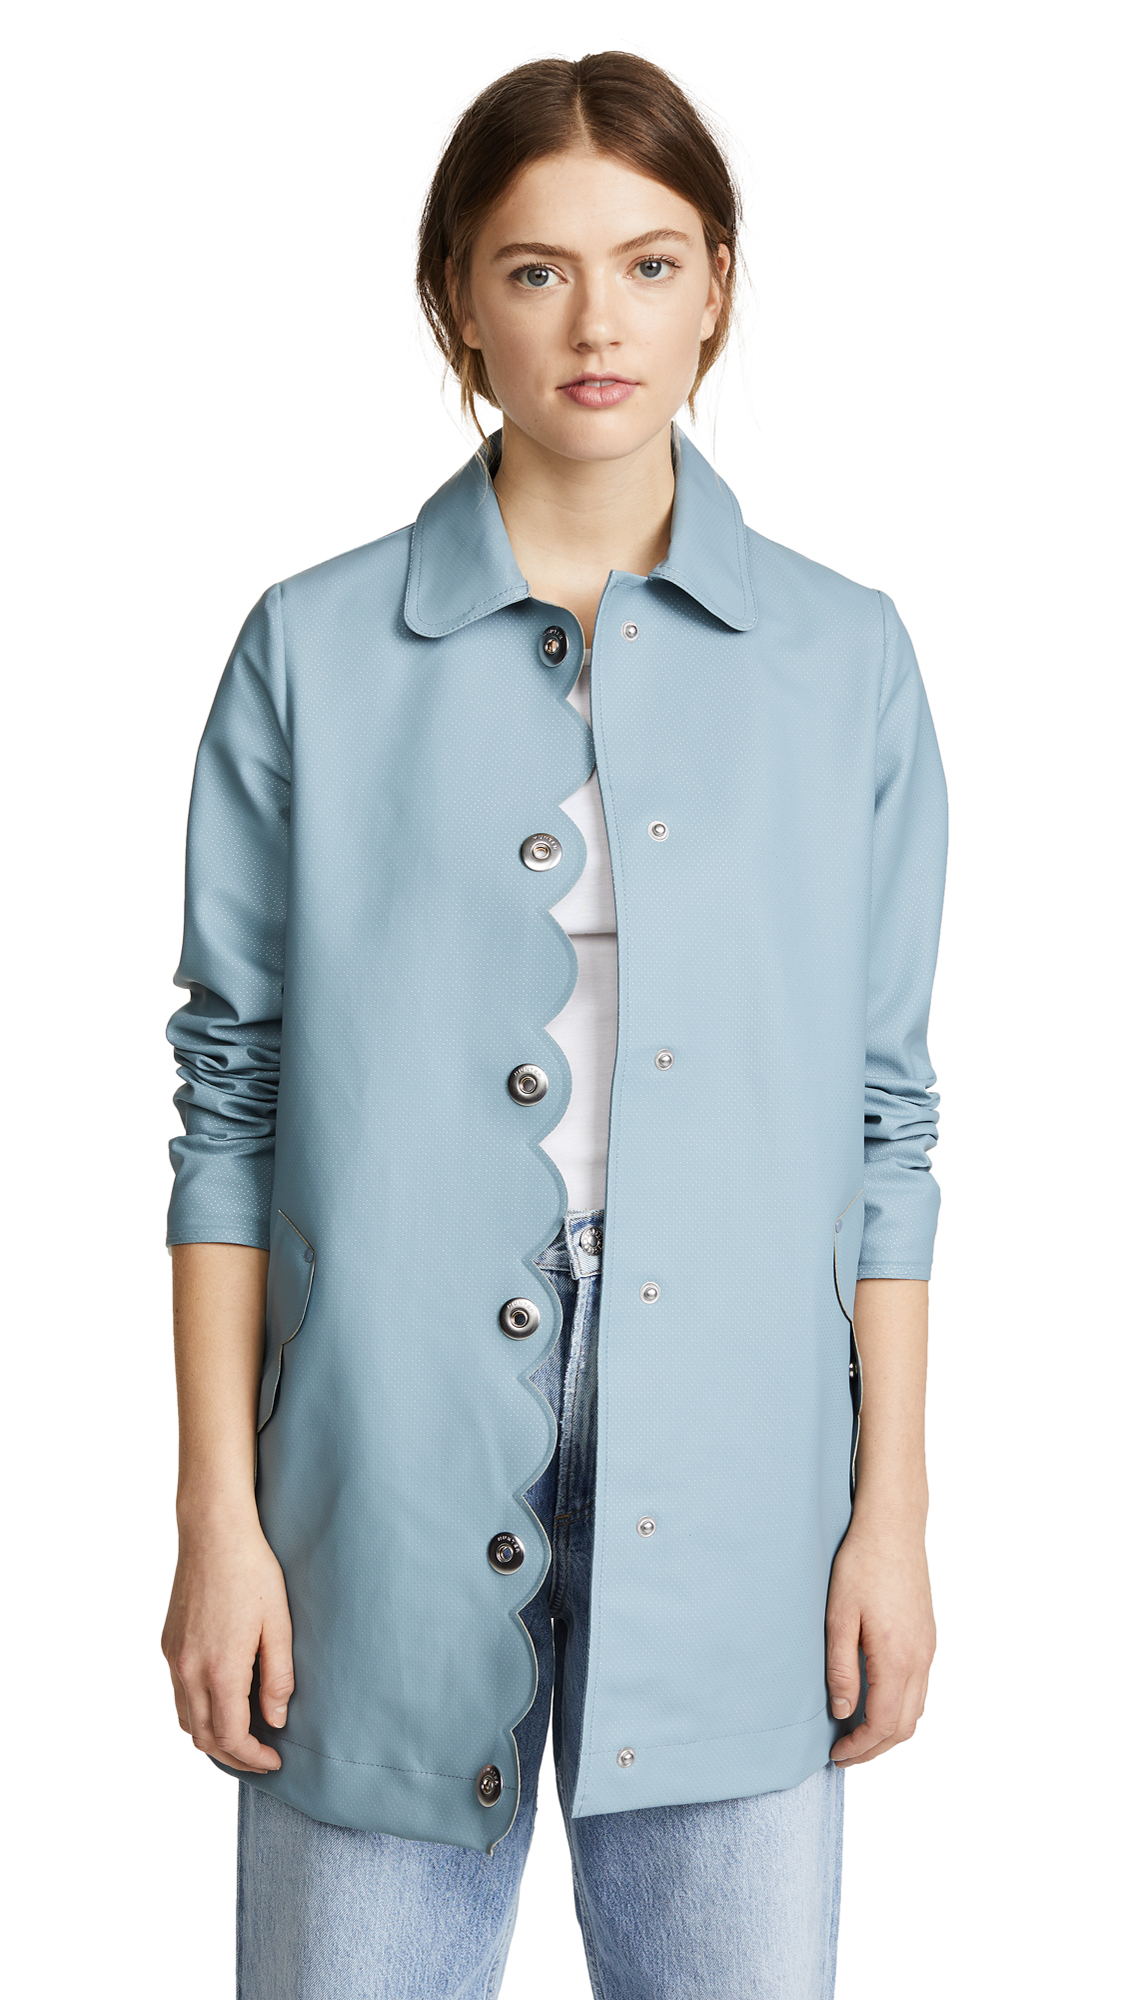 Hunter Boots Perforated A-Line Coat - Blue Mist